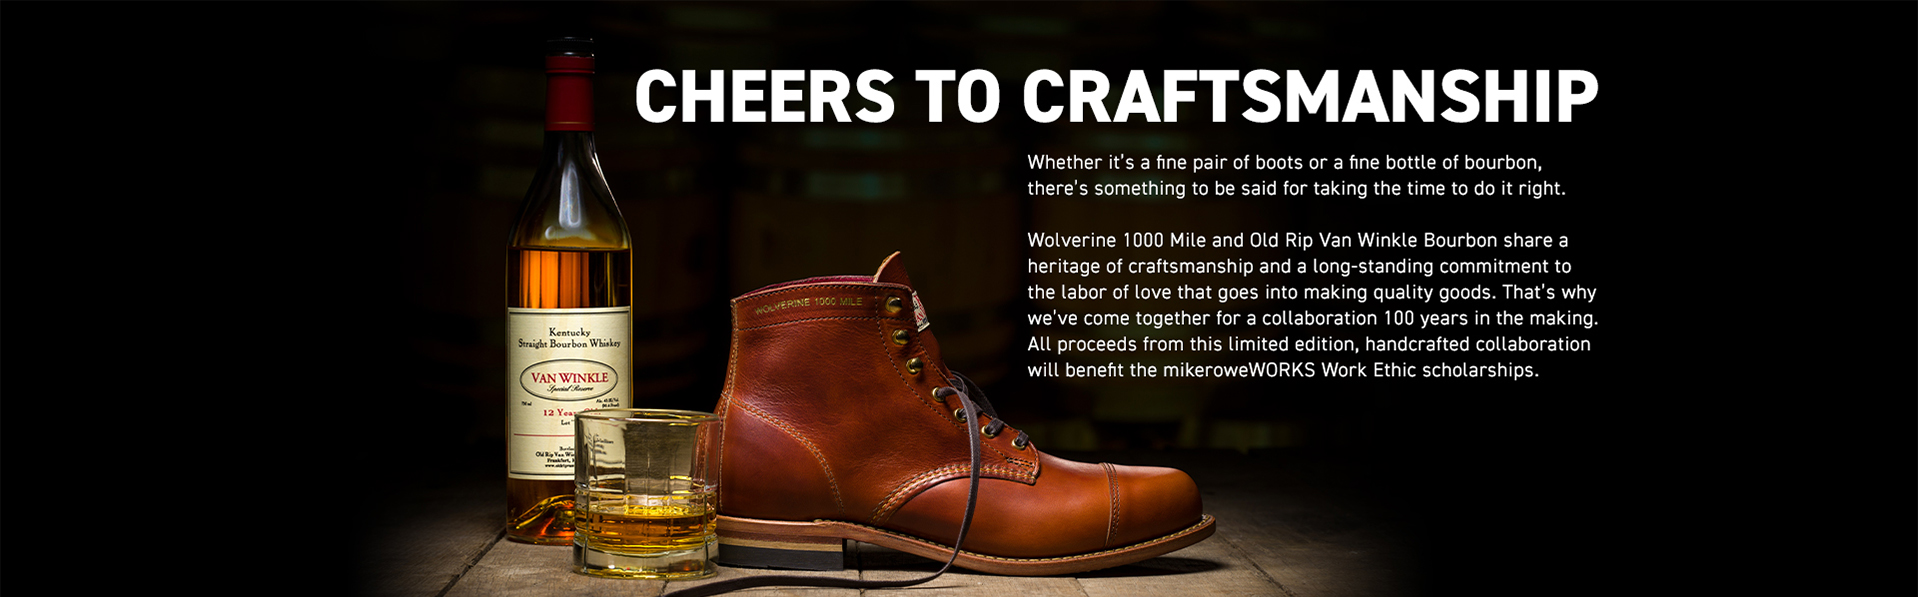 Wolverine, Cheers to craftsmanship - Whether it's a fine pair of boots or a fine bottle of bourbon, there's         something to be said for taking the time to do it right.